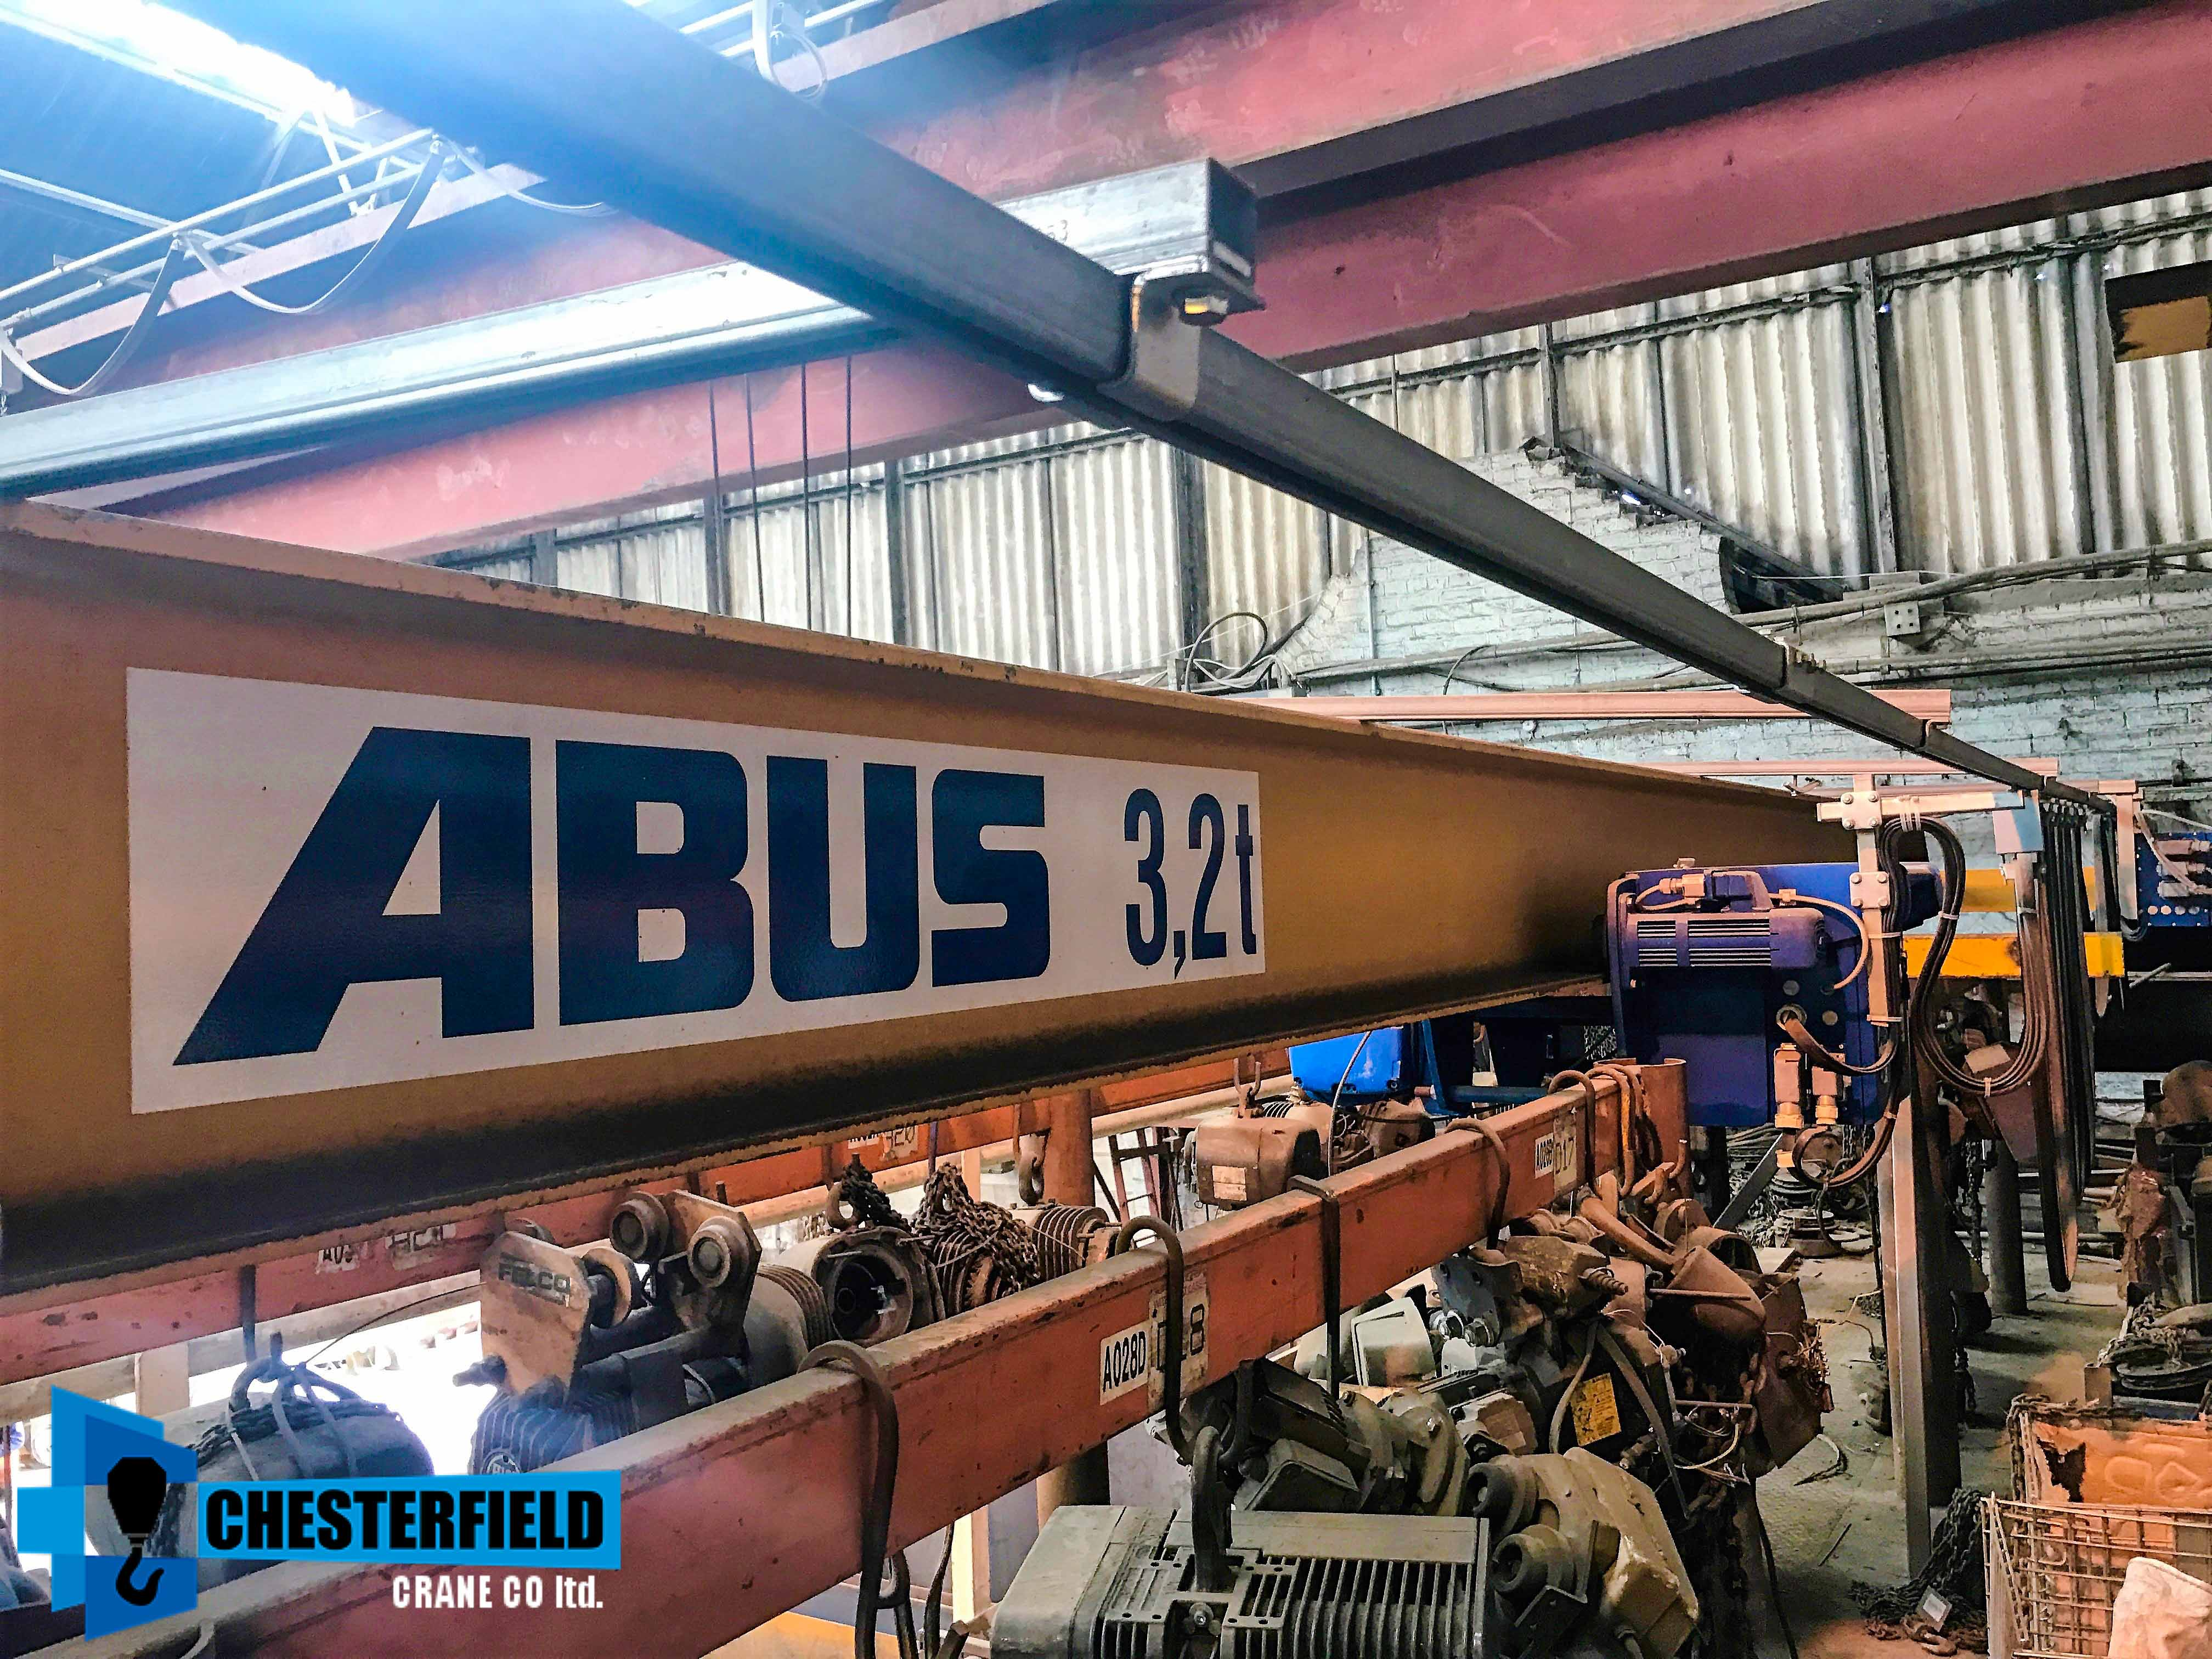 Used 1997 Abus 32 Tonne 14 Metre Single Beam M4 Overhead Crane For Diagram All Cases There Is An Cranes Gantry Gallery Thumbnail